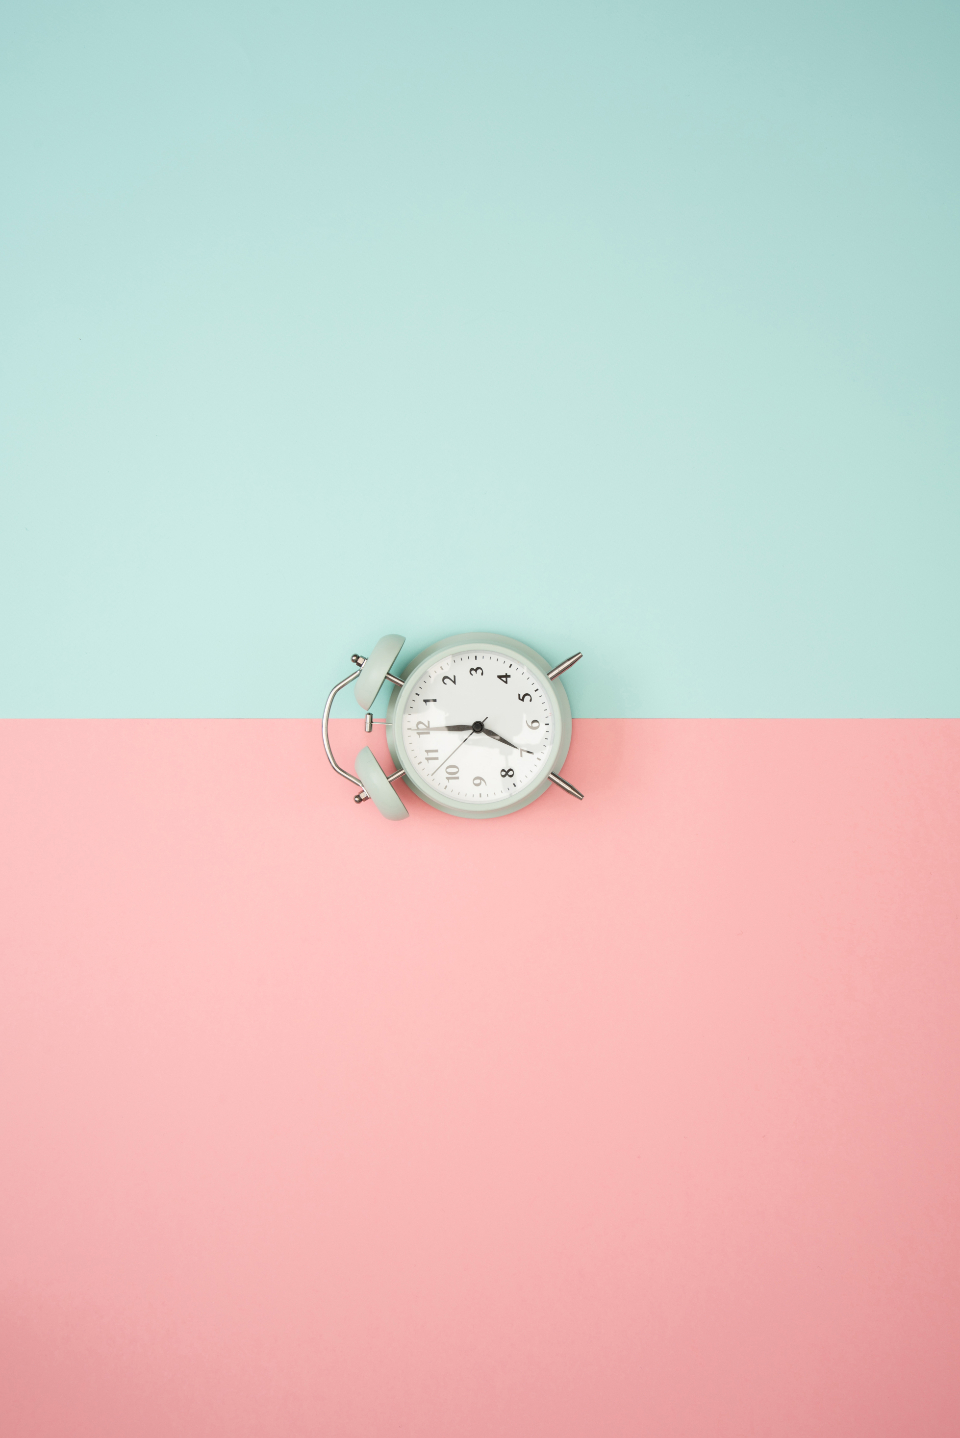 Cute Dog Background Wallpaper Free Photo Of Clock Pastel Background Blue Stocksnap Io